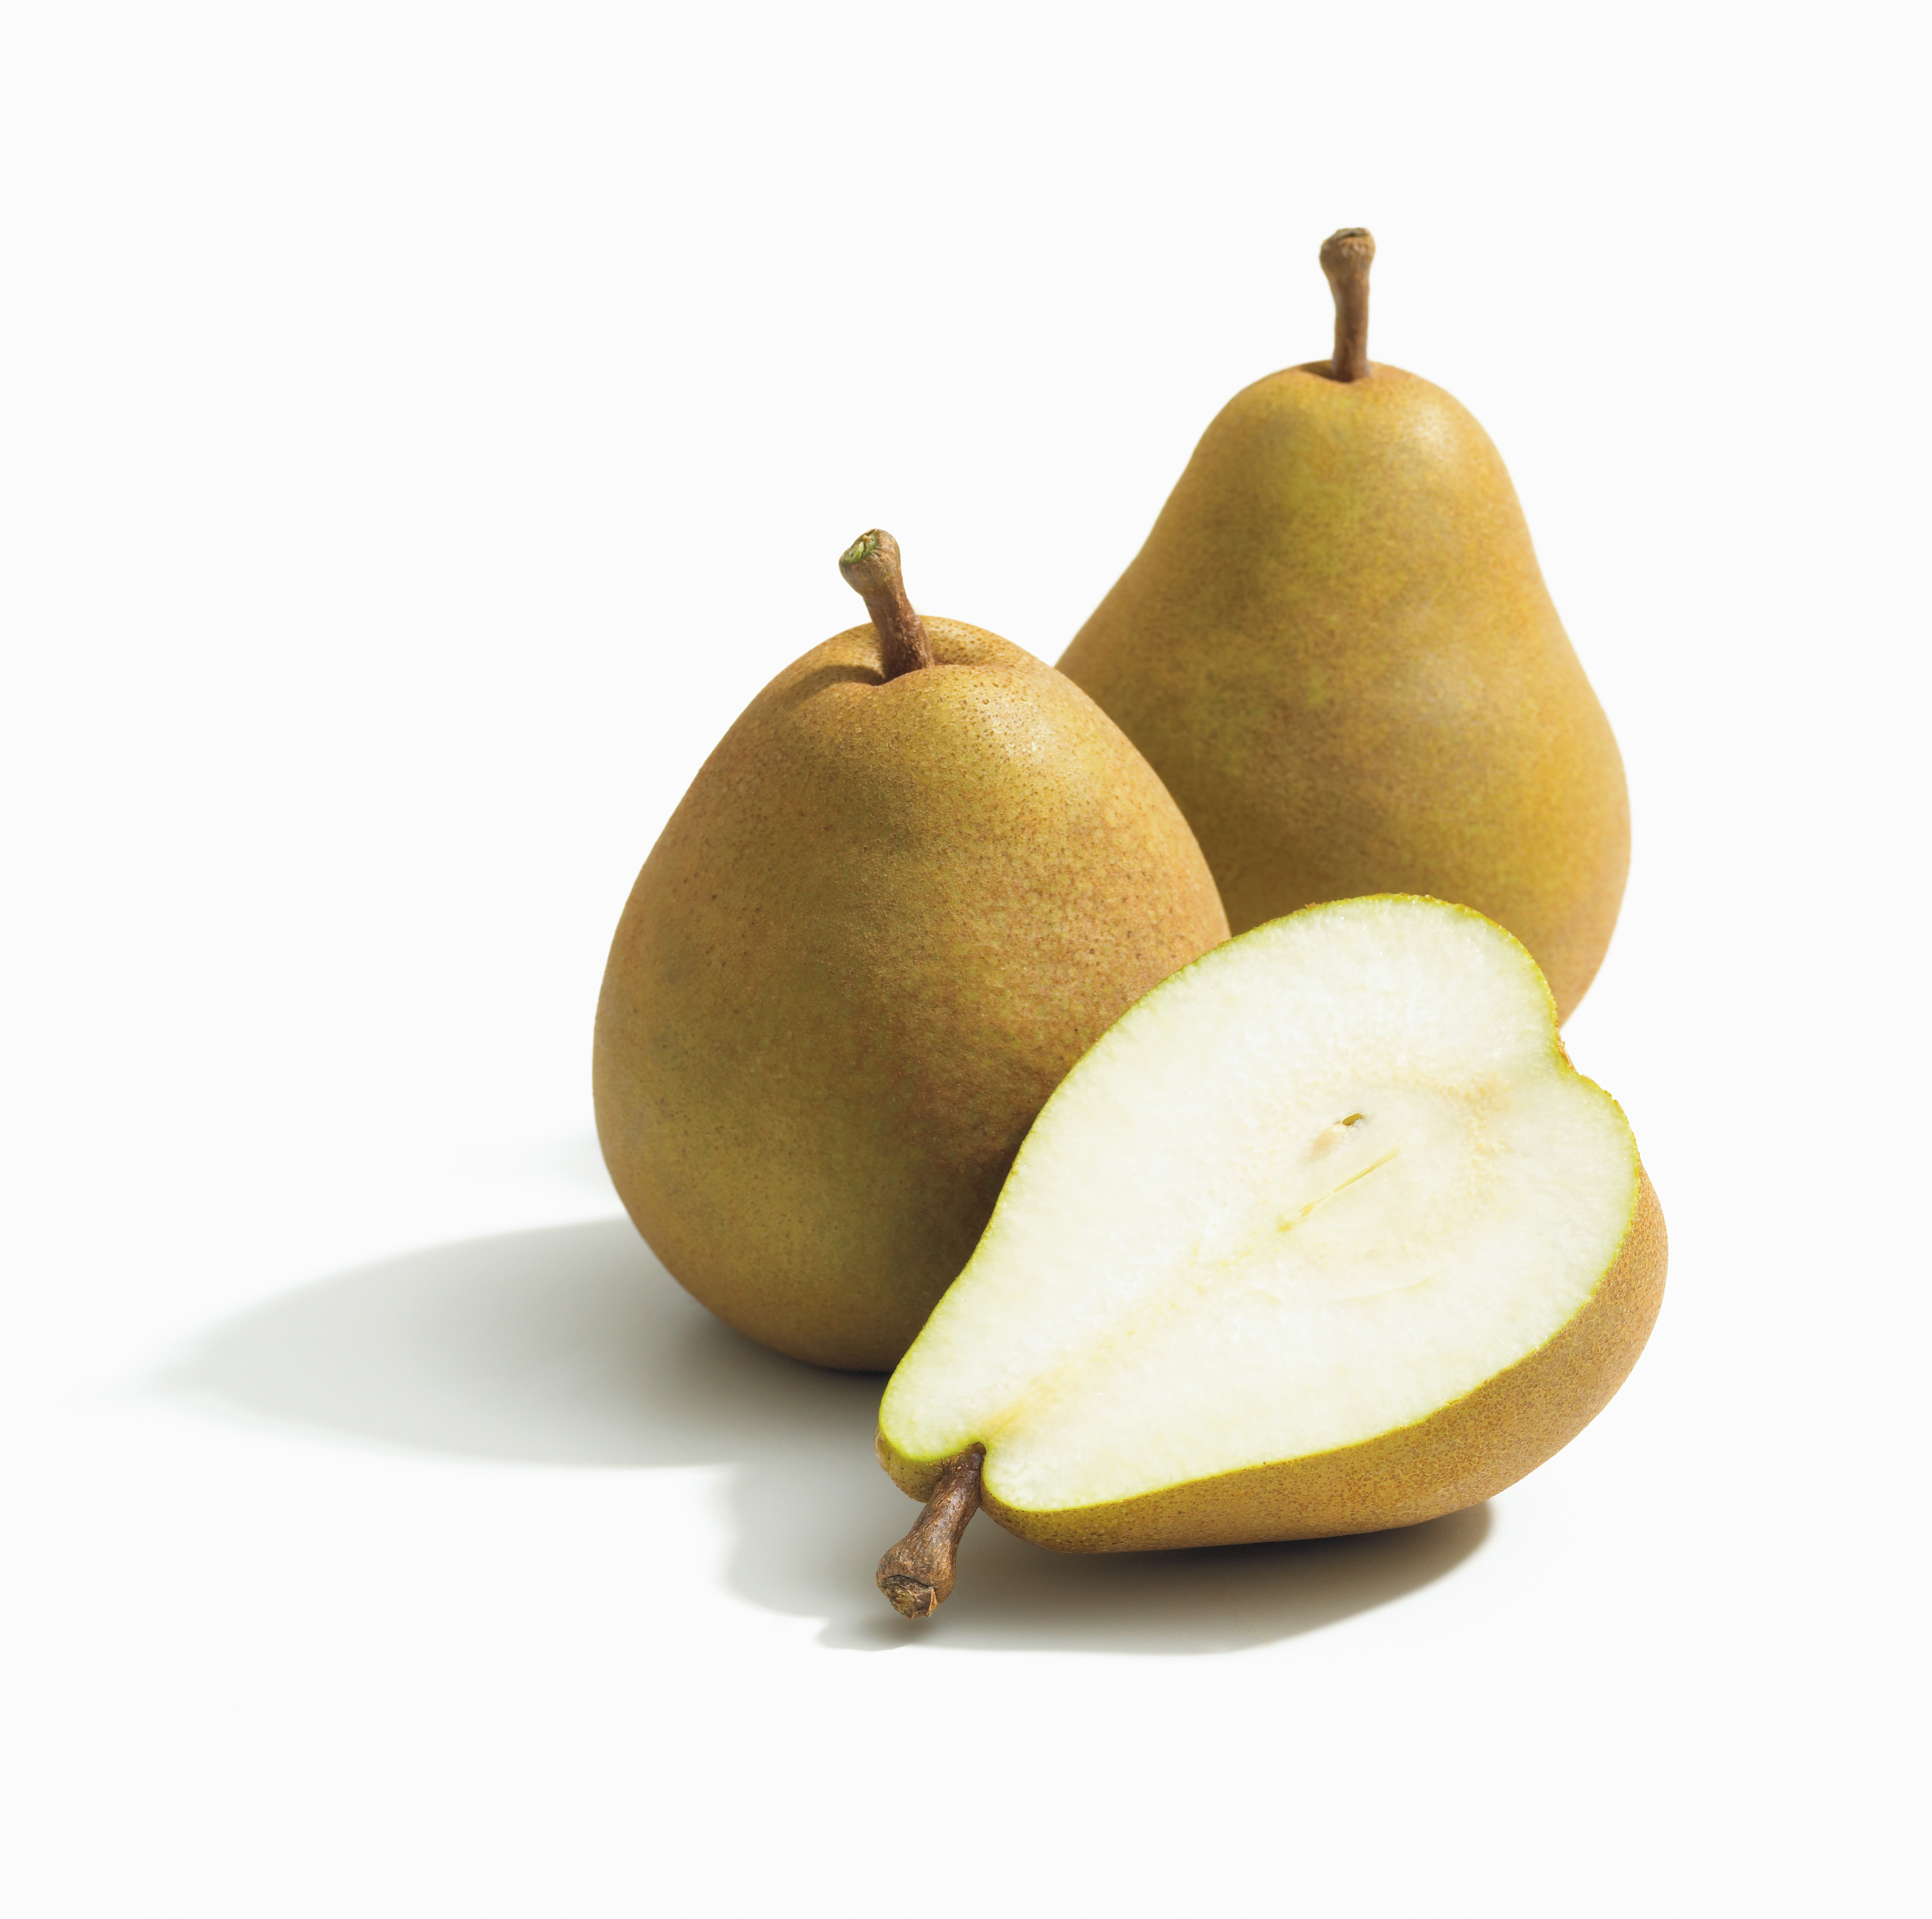 Variety of pears pictures